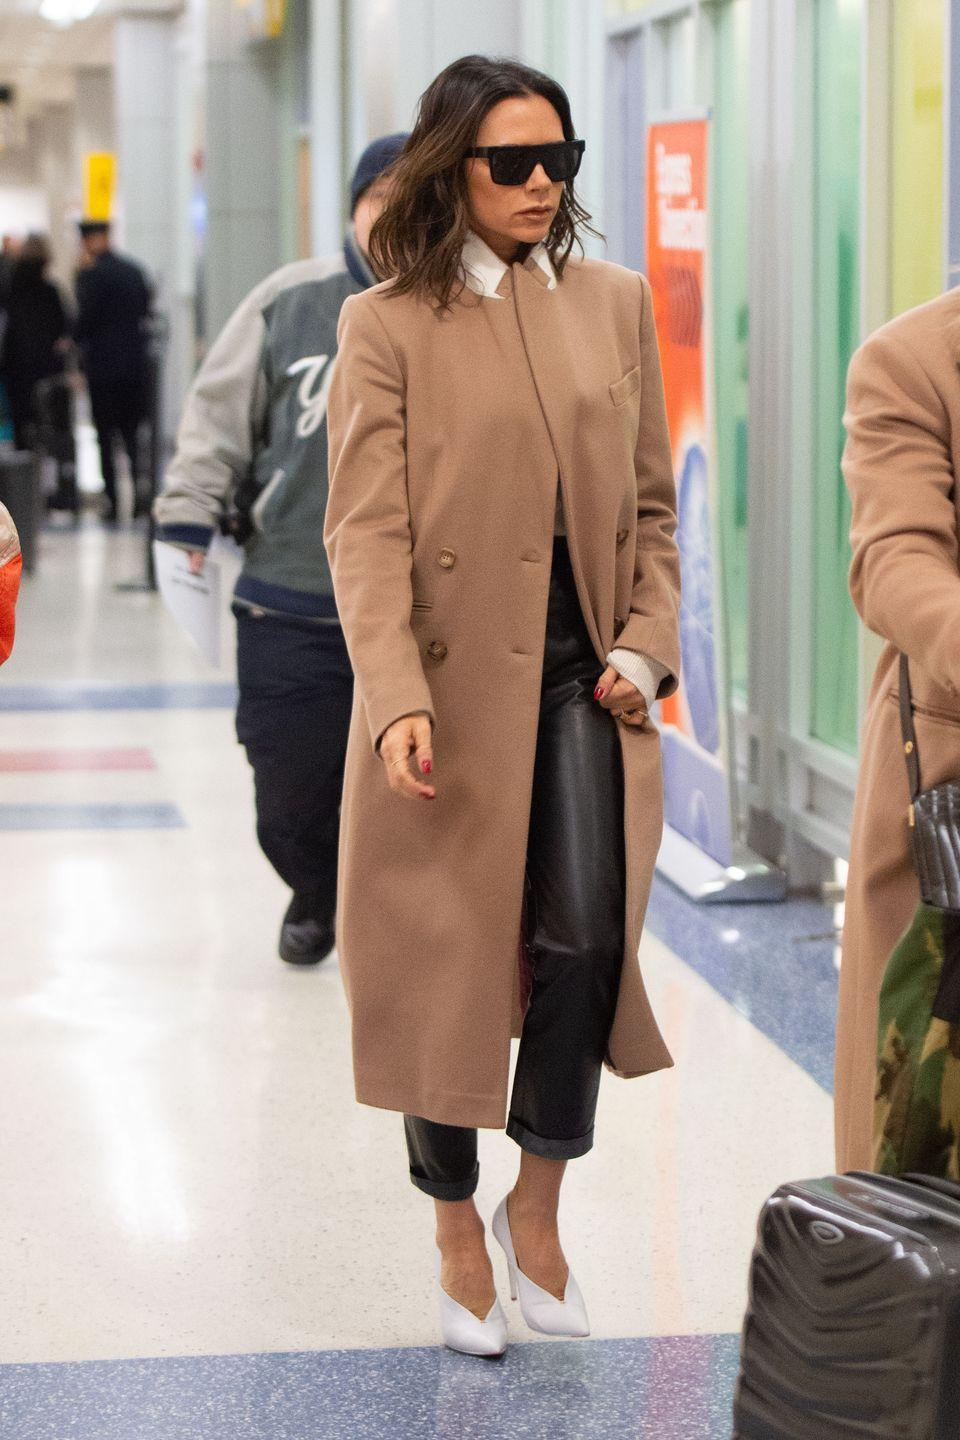 <p><strong>Victoria Beckham, 2019: </strong>Not only did the star wear white heels, she also wore <em>leather</em> bottoms. Her idea of comfort is drastically different than what most of us have in mind, but hey, she's <em>the</em> Victoria Beckham. </p>